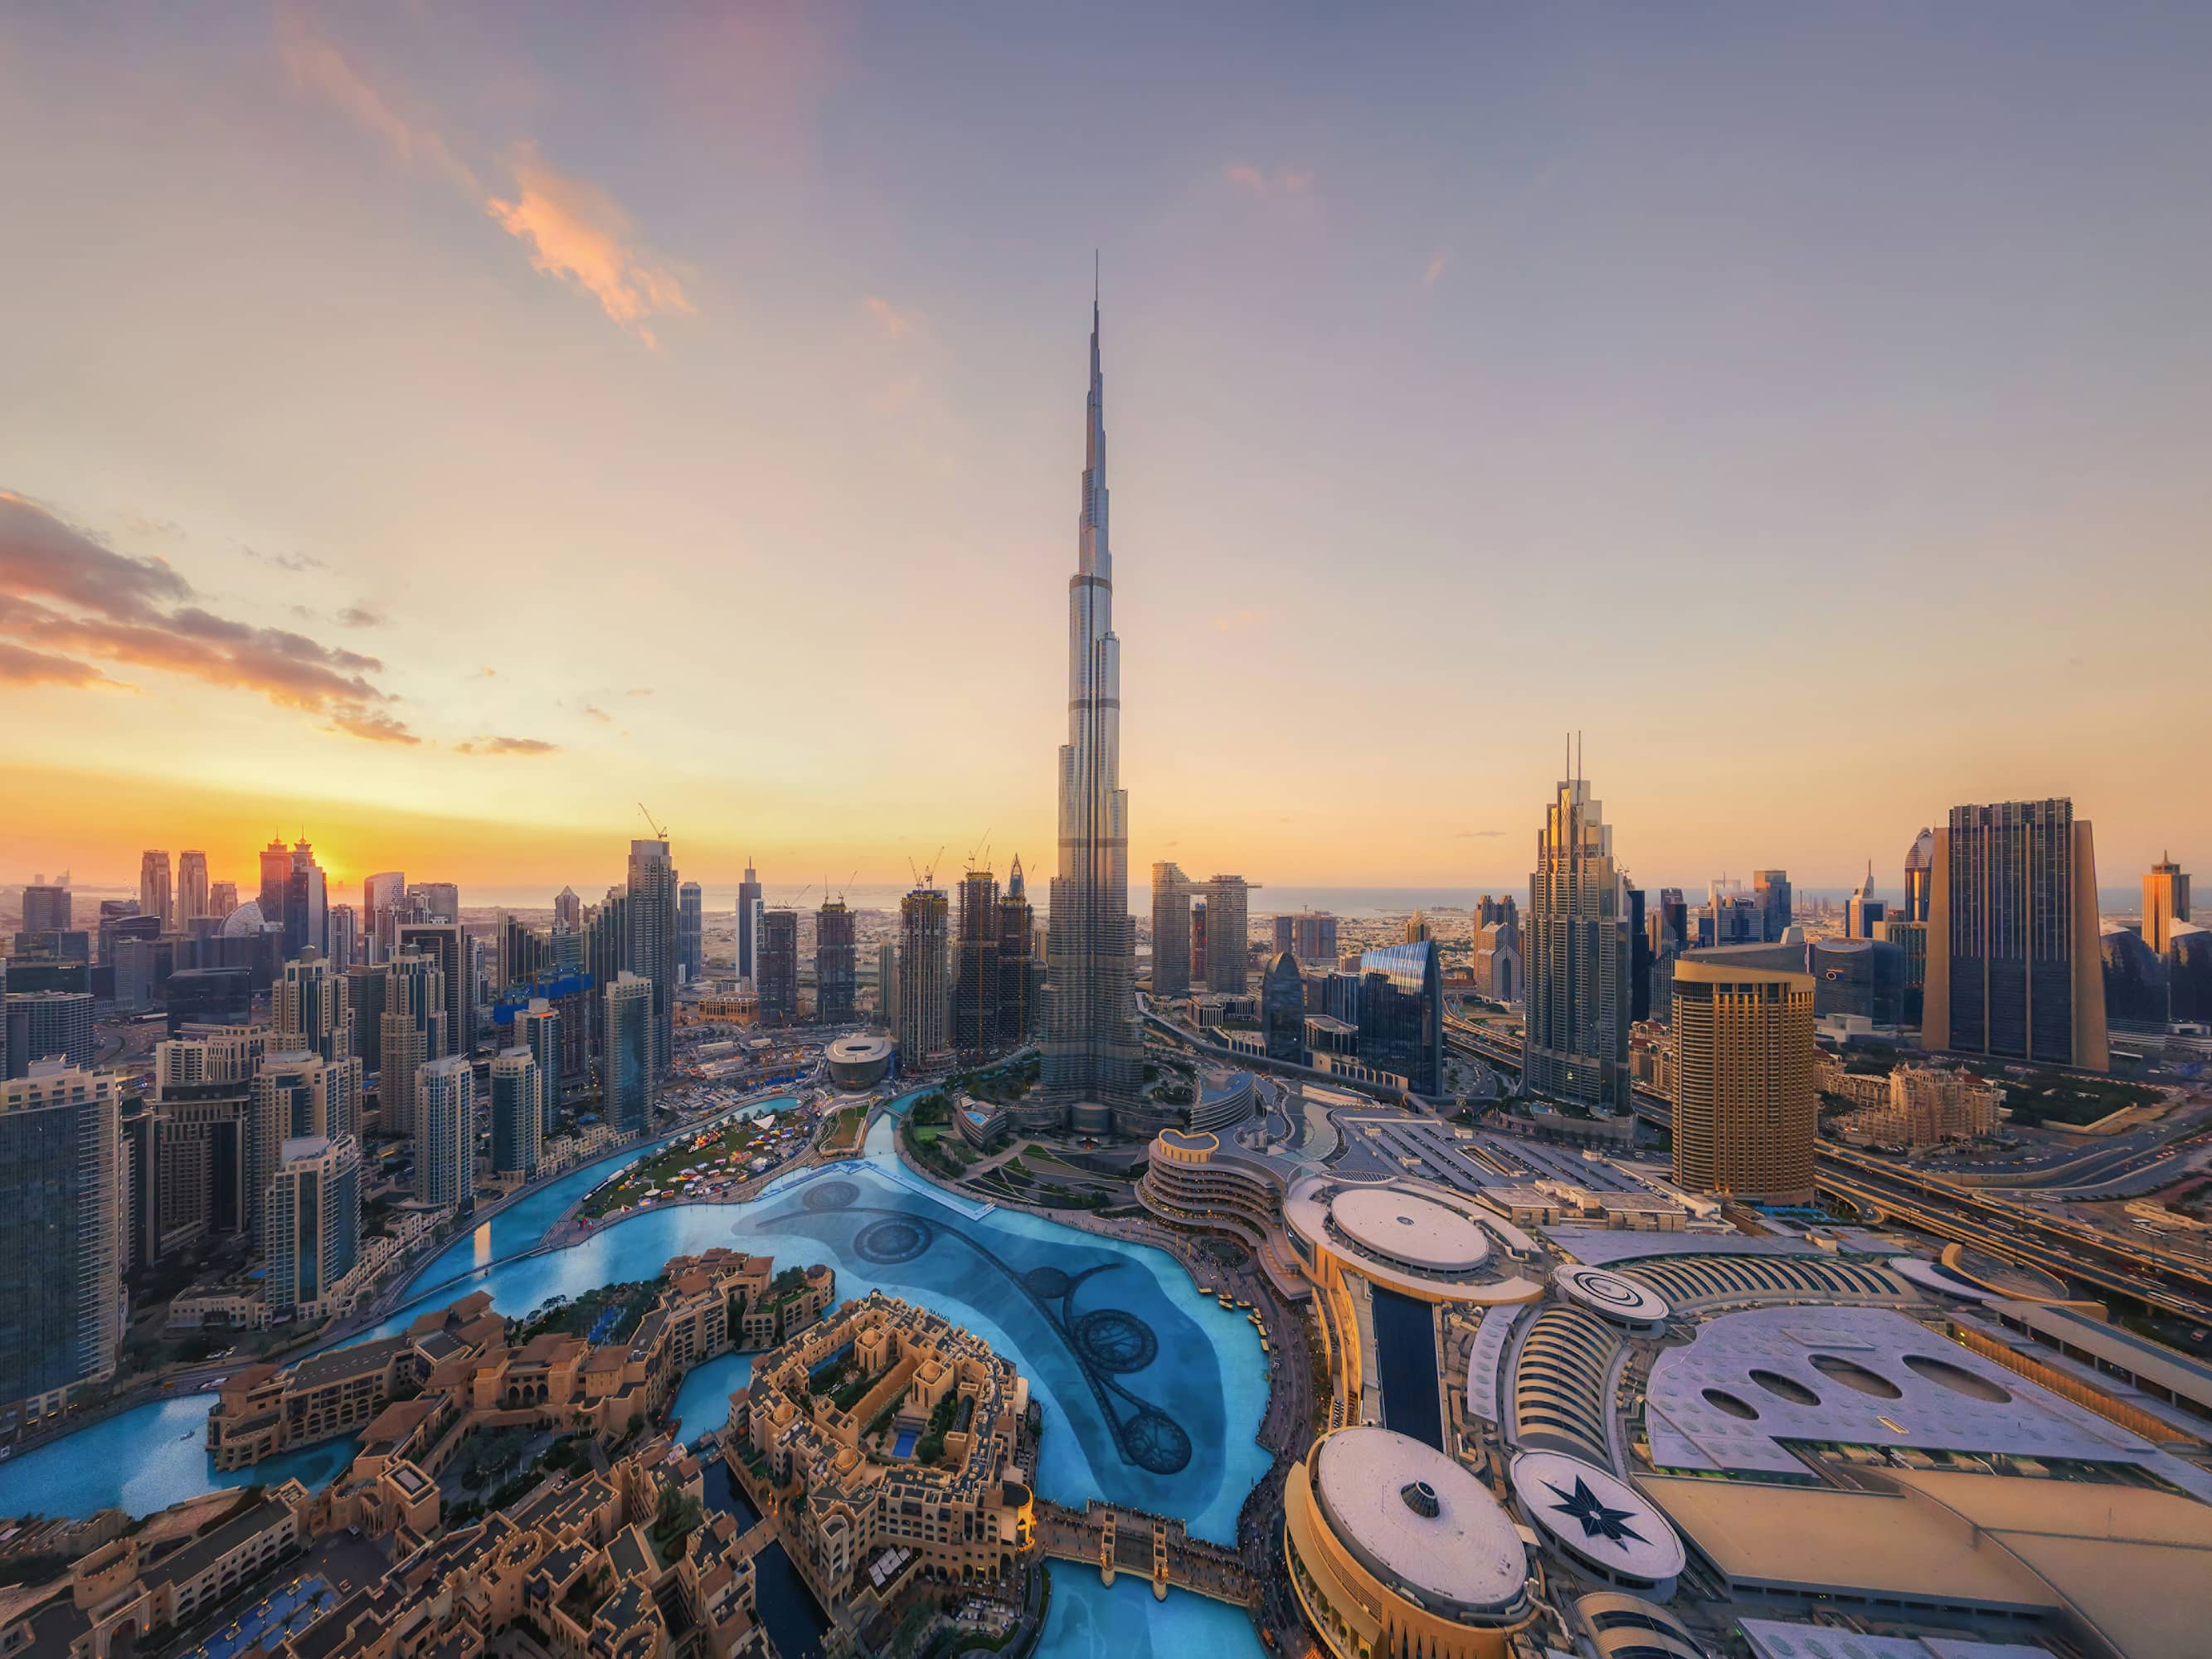 Watch the sun set from Dubai's iconic skyscraper